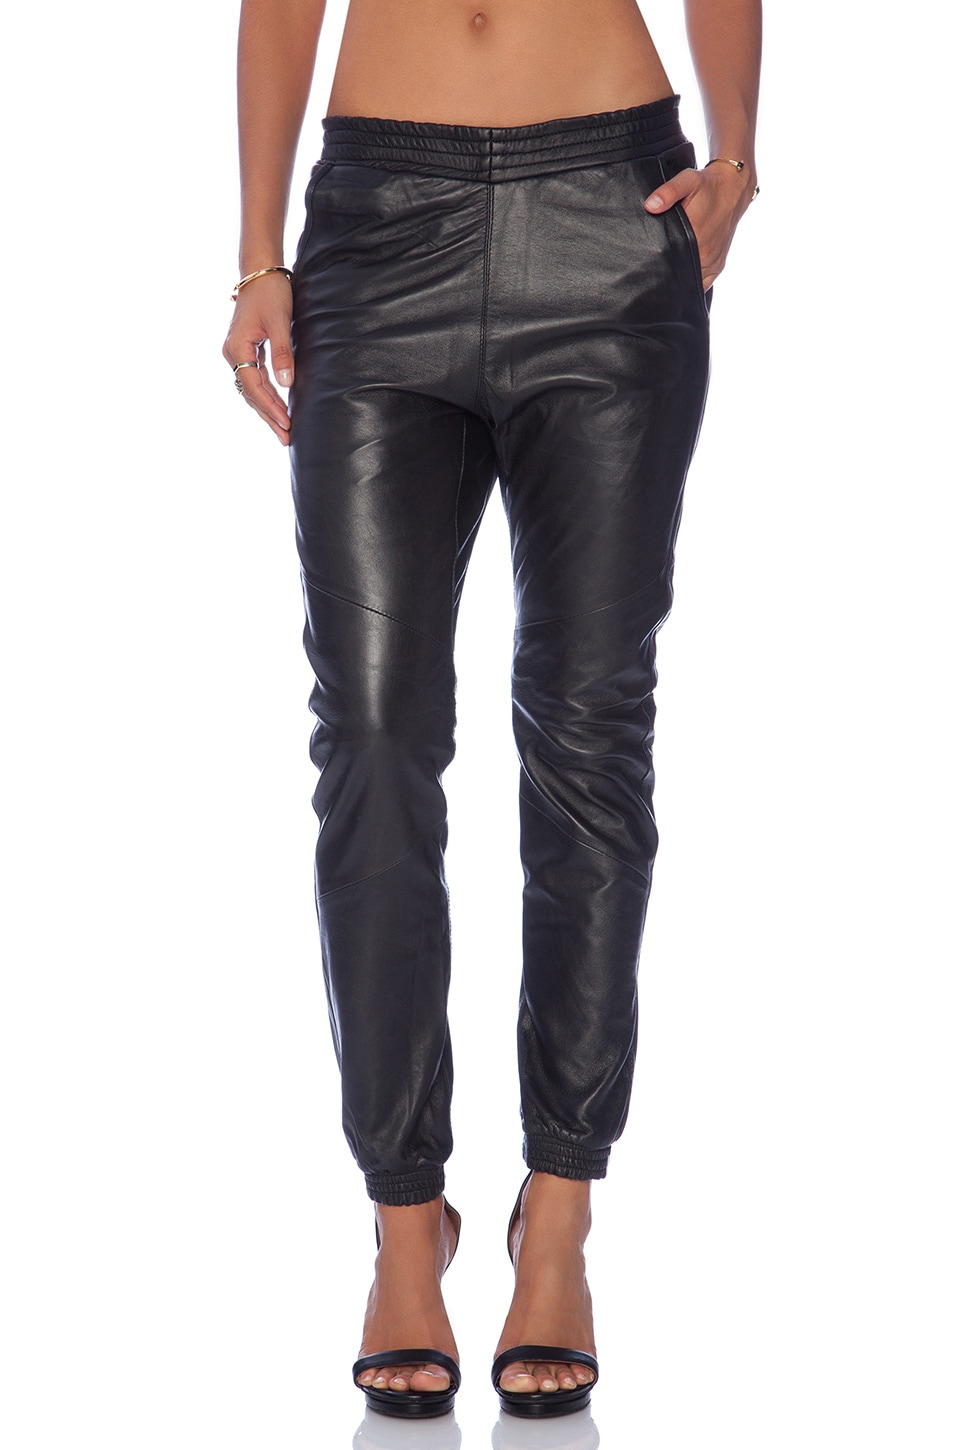 One Teaspoon Leather Super Trackies in Black